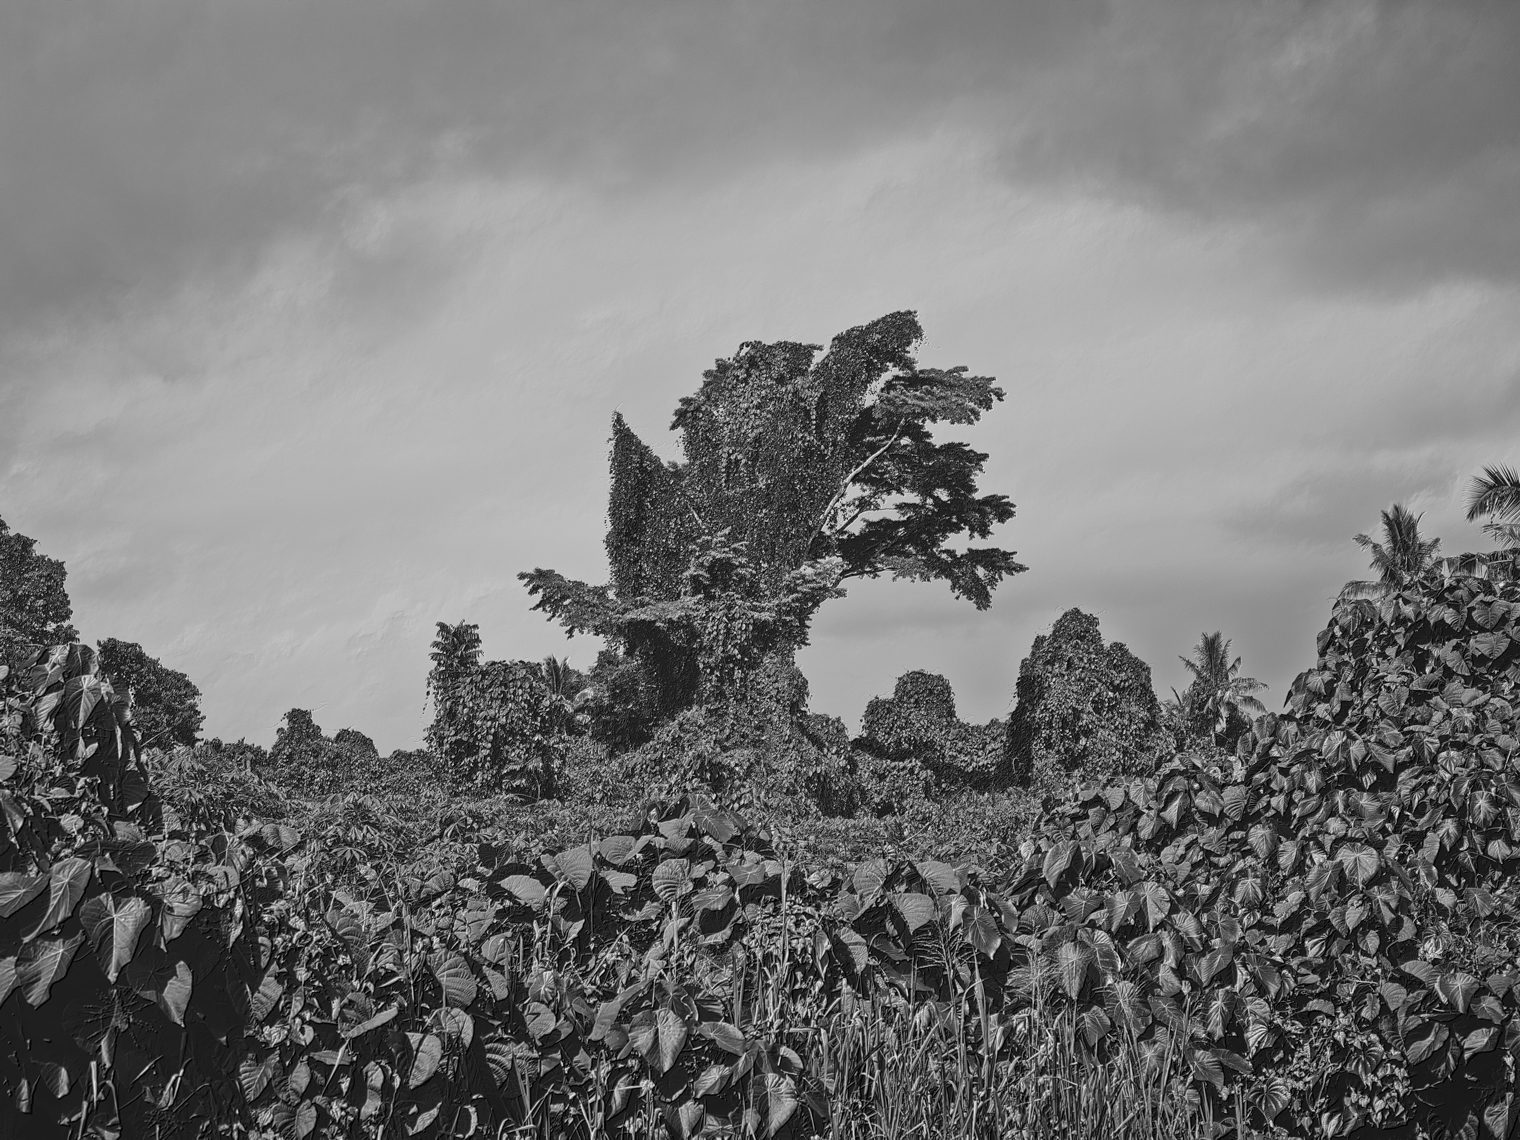 Jon Wyatt Photography - Fault Line VI - A tsunami of vegetation - invasive vines in samoa